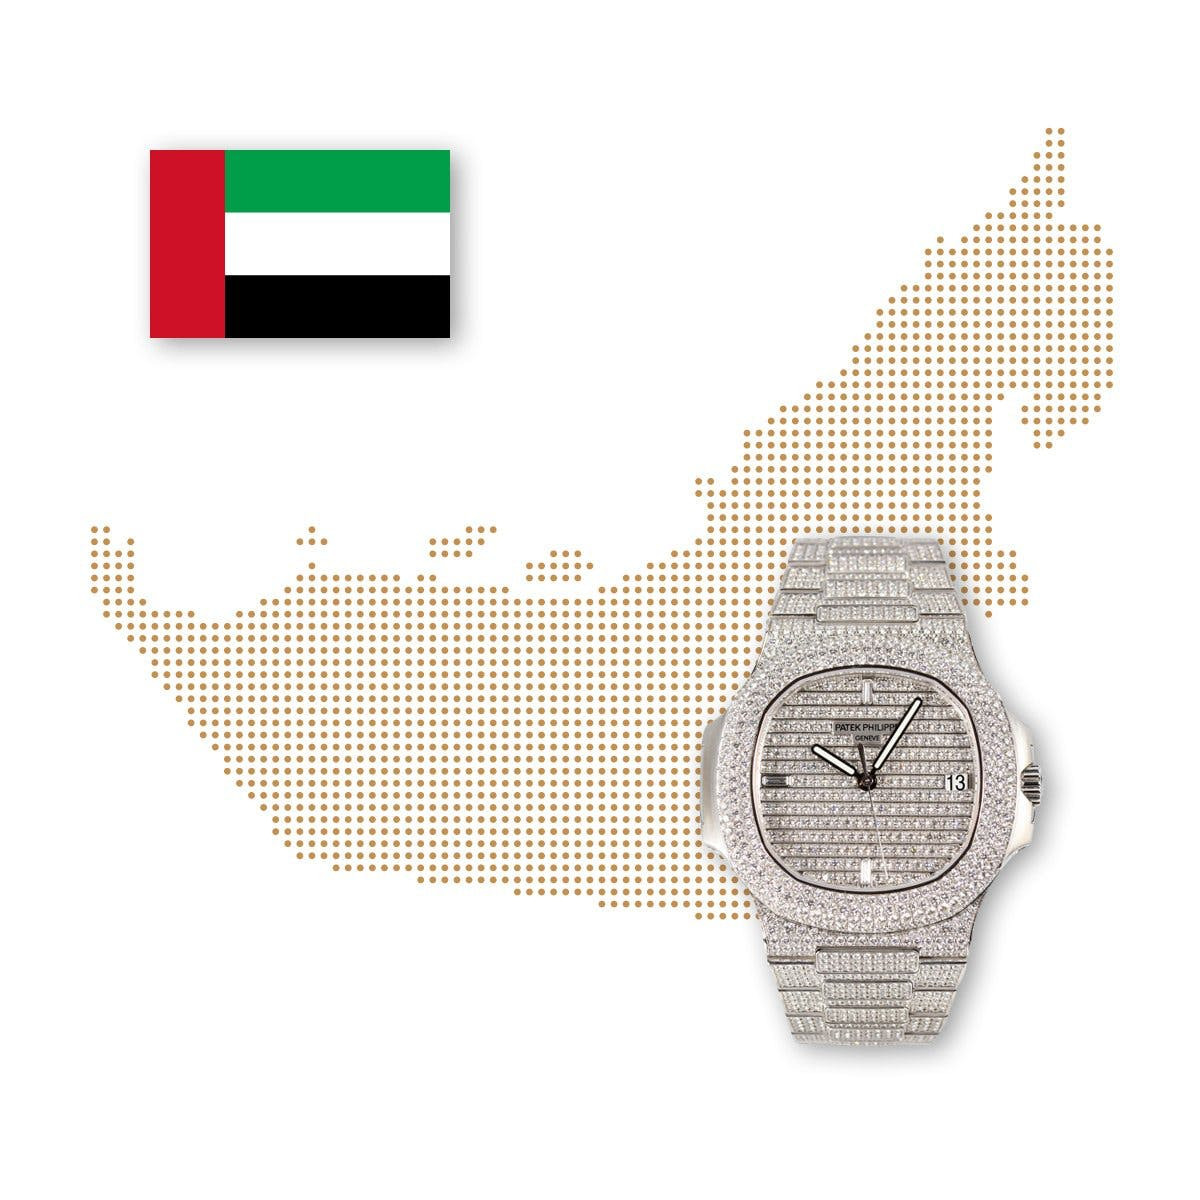 In the UAE, Rolex is closely followed by the luxury brands Audemars Piguet and Patek Philippe.